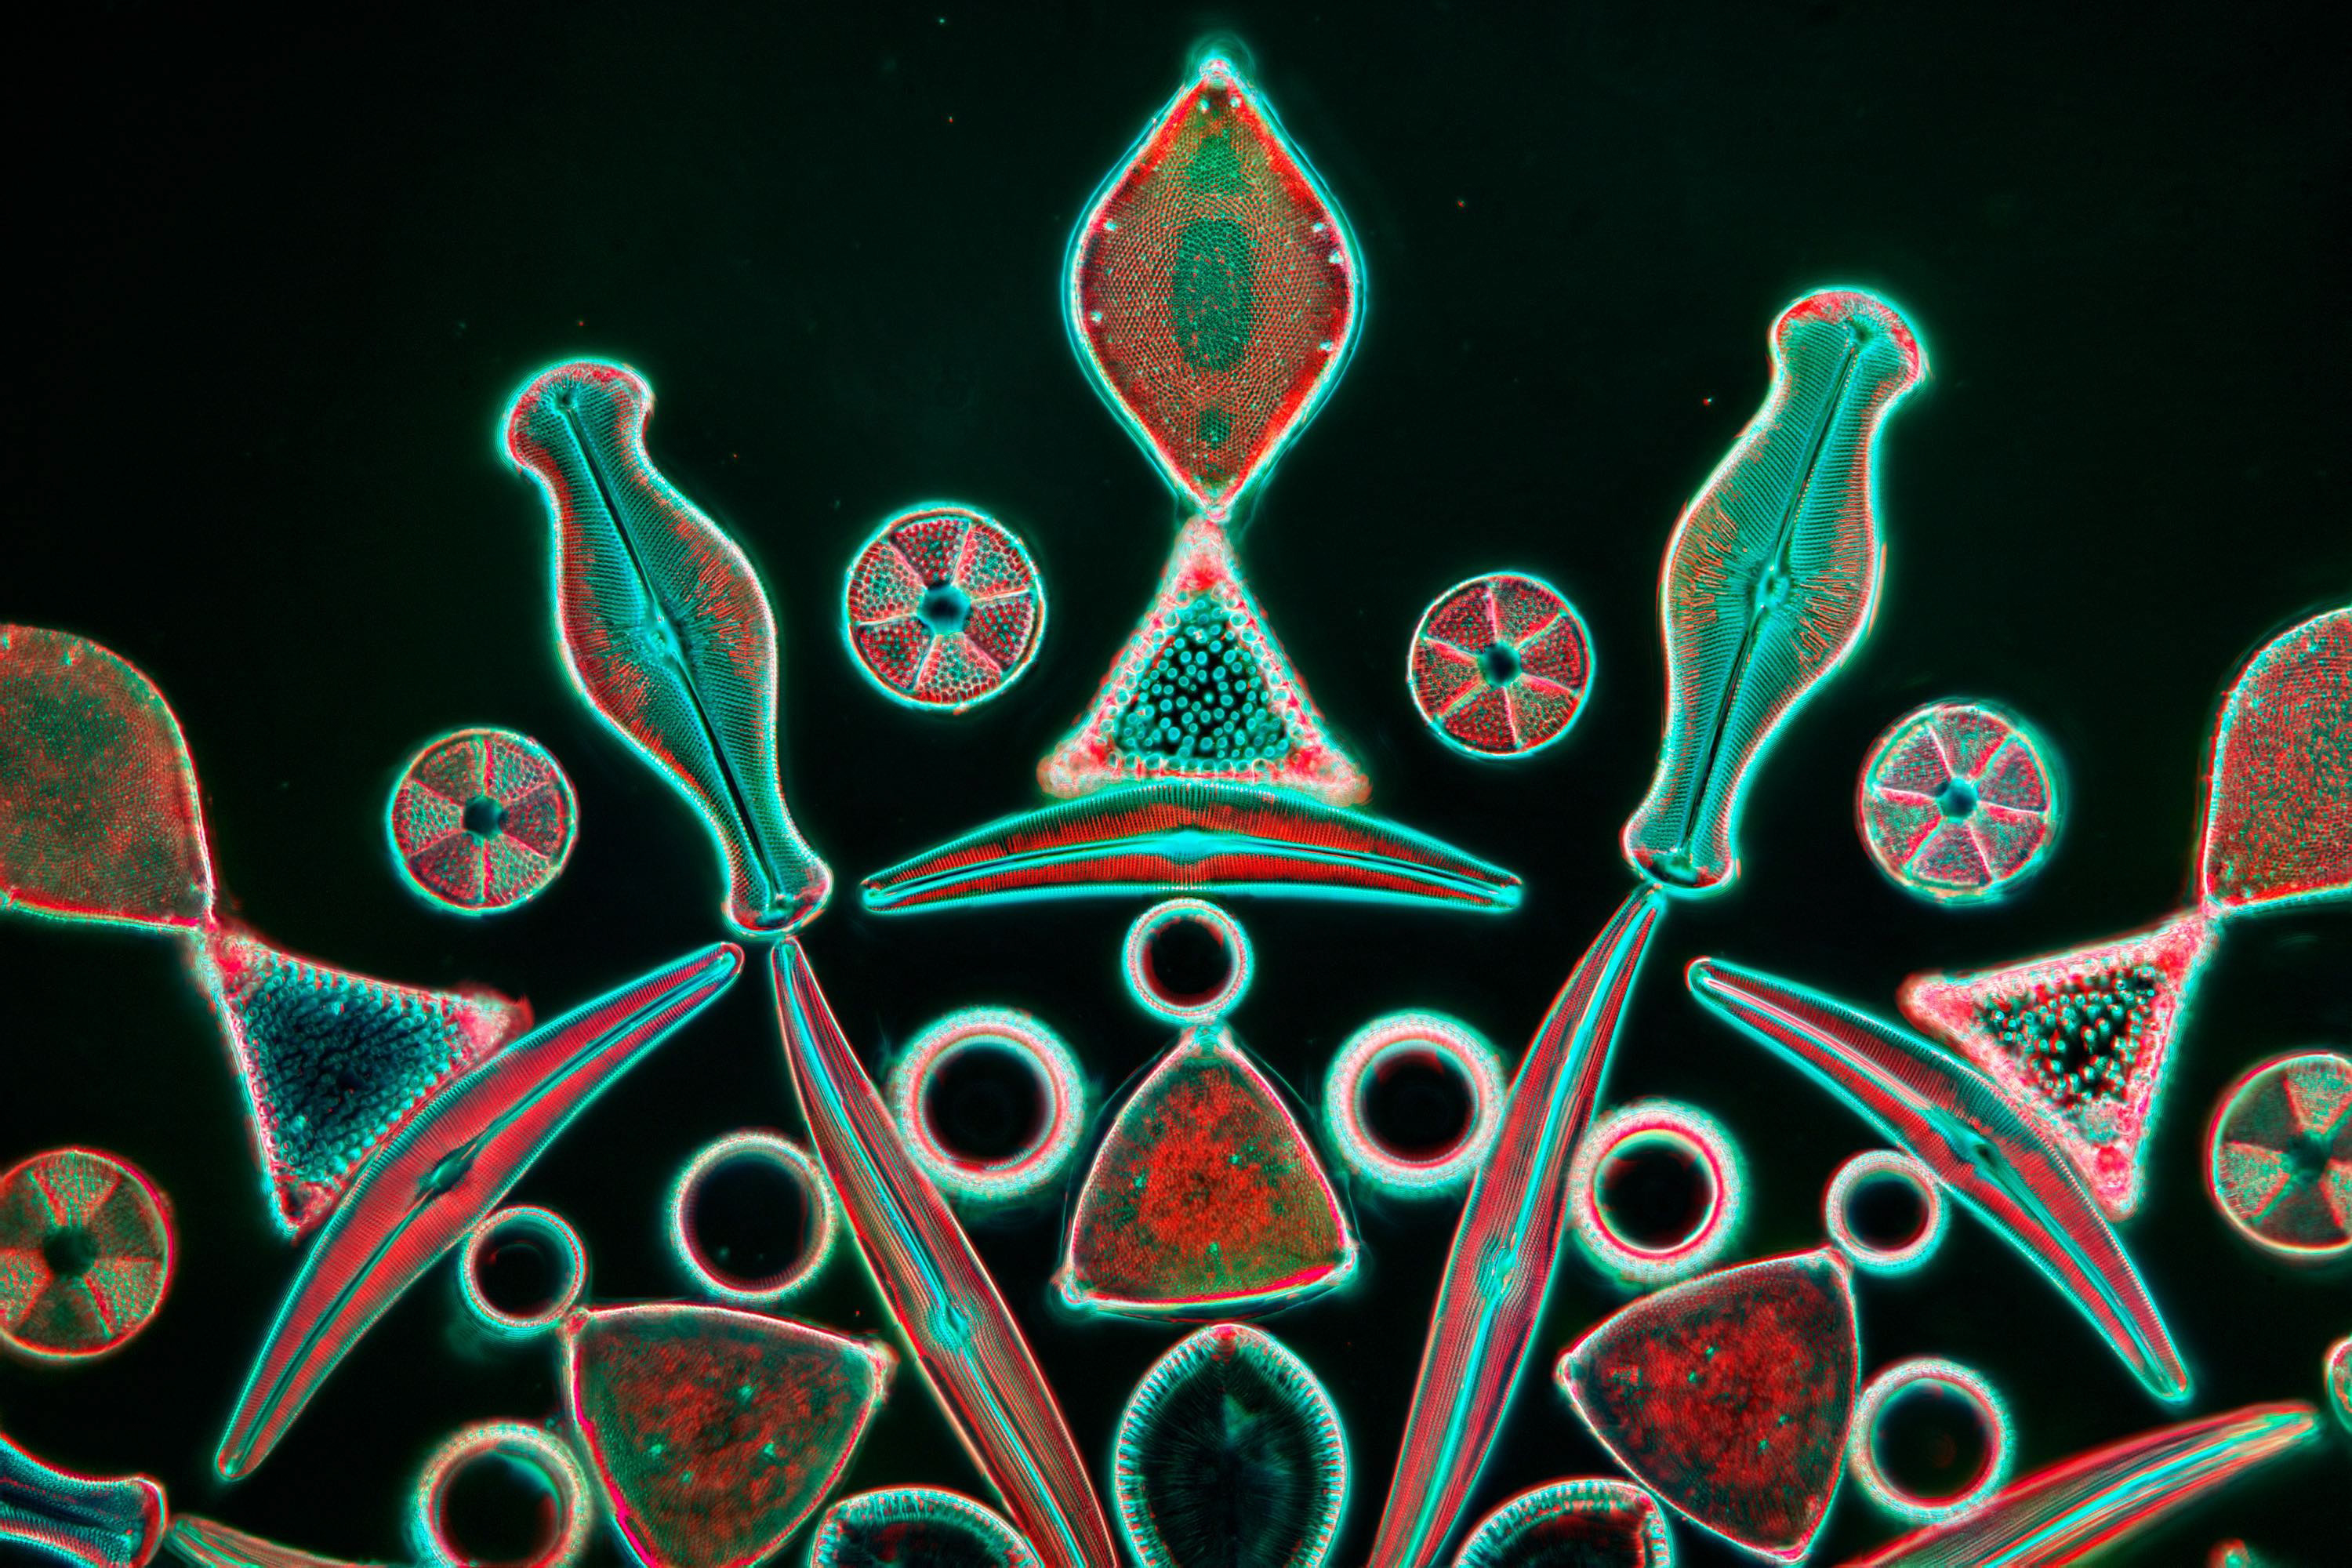 Arranged diatom